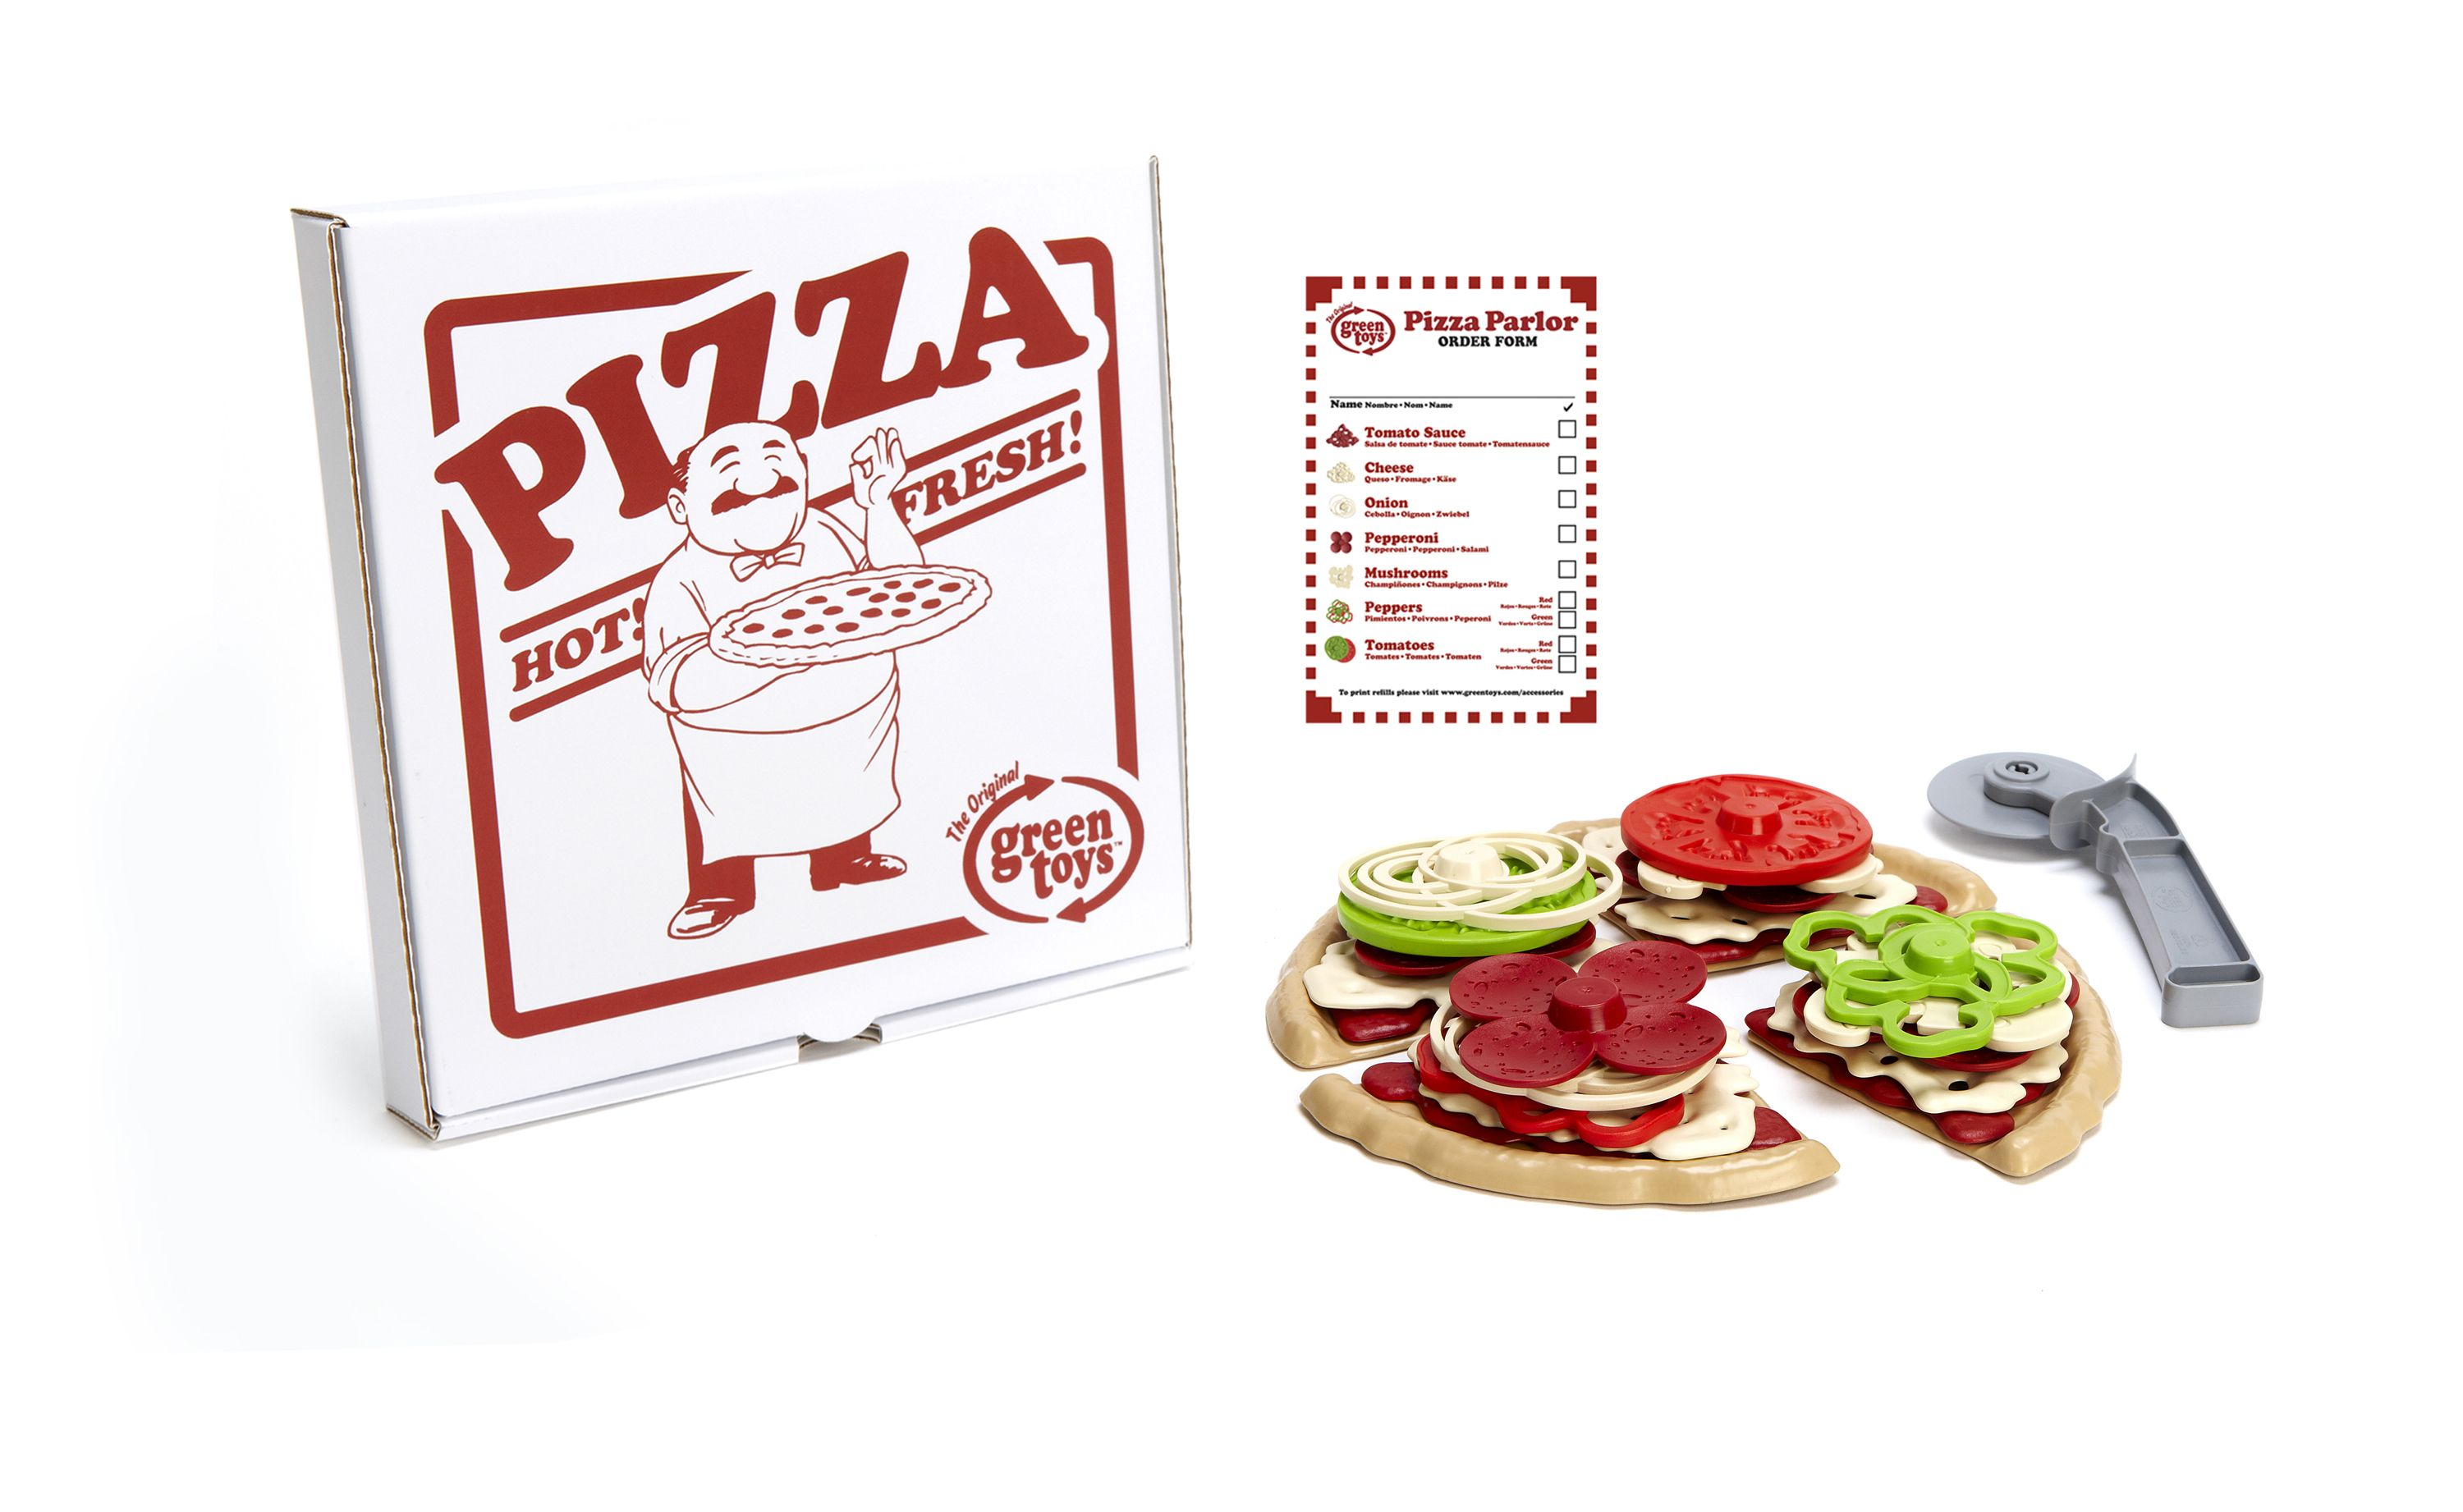 @greentoys Pizza Parlour (a great Christmas present!) available here: http://www.naturebumz.com/green-toys-pizza-parlor.html